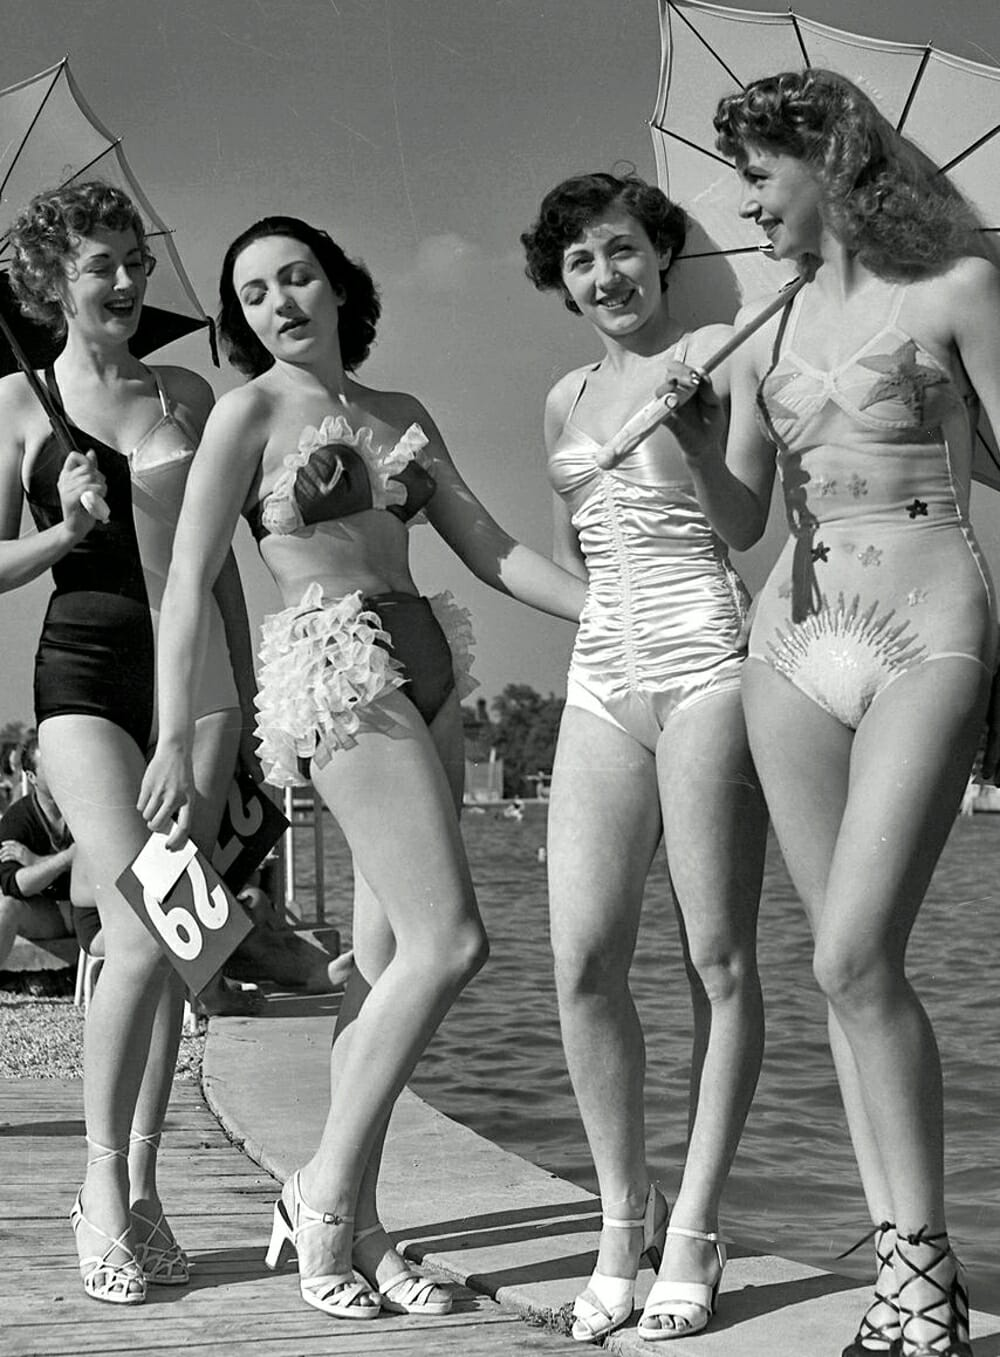 Evolution Of Swimwear - 1940s vintage style